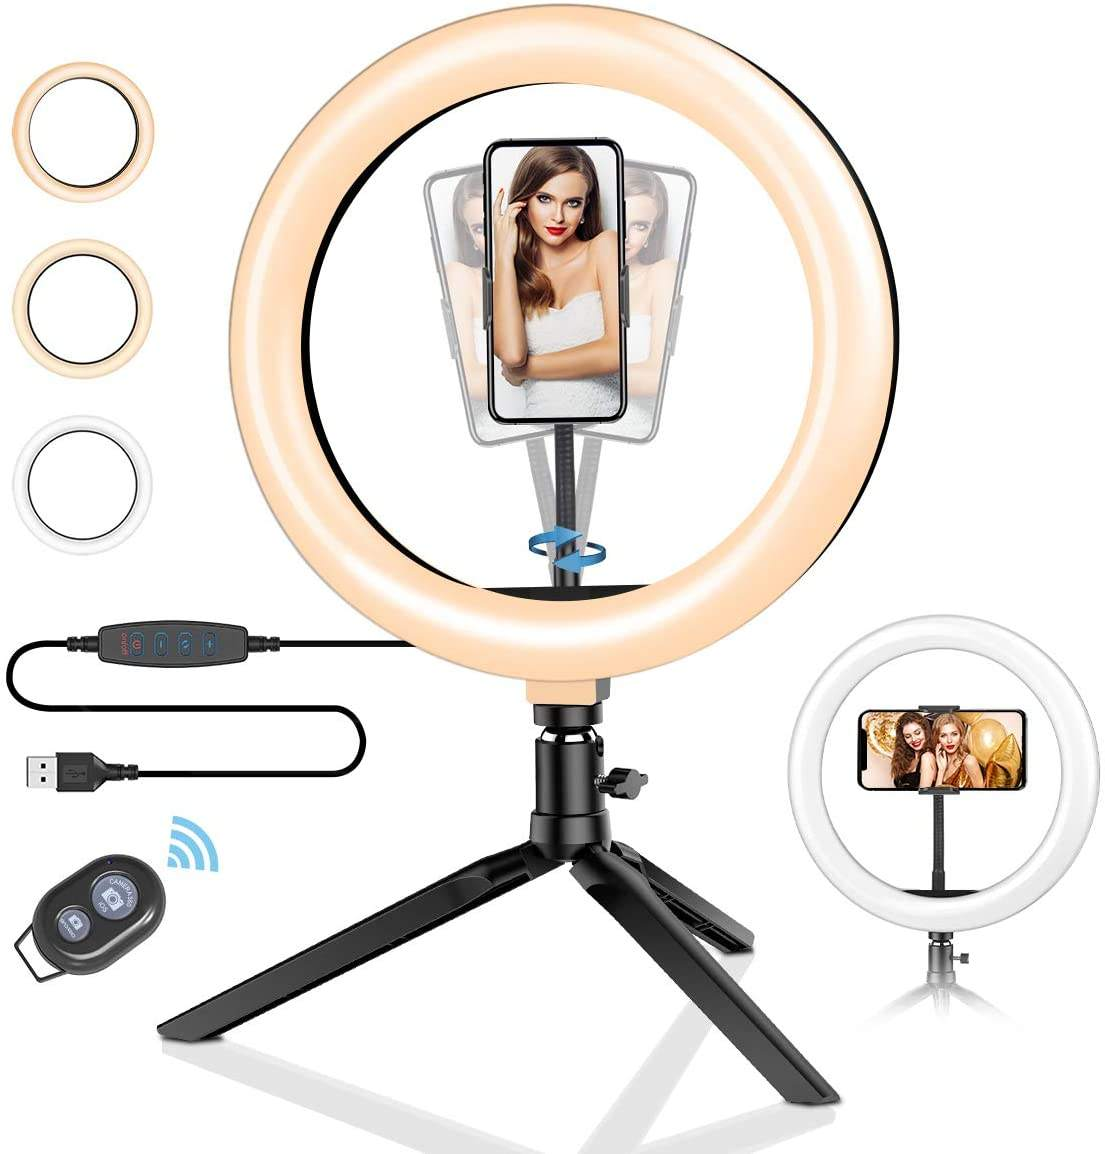 10 inch led circle ring light with tripod stand and Phone Holder for YouTube Video Live Stream Makeup Photography